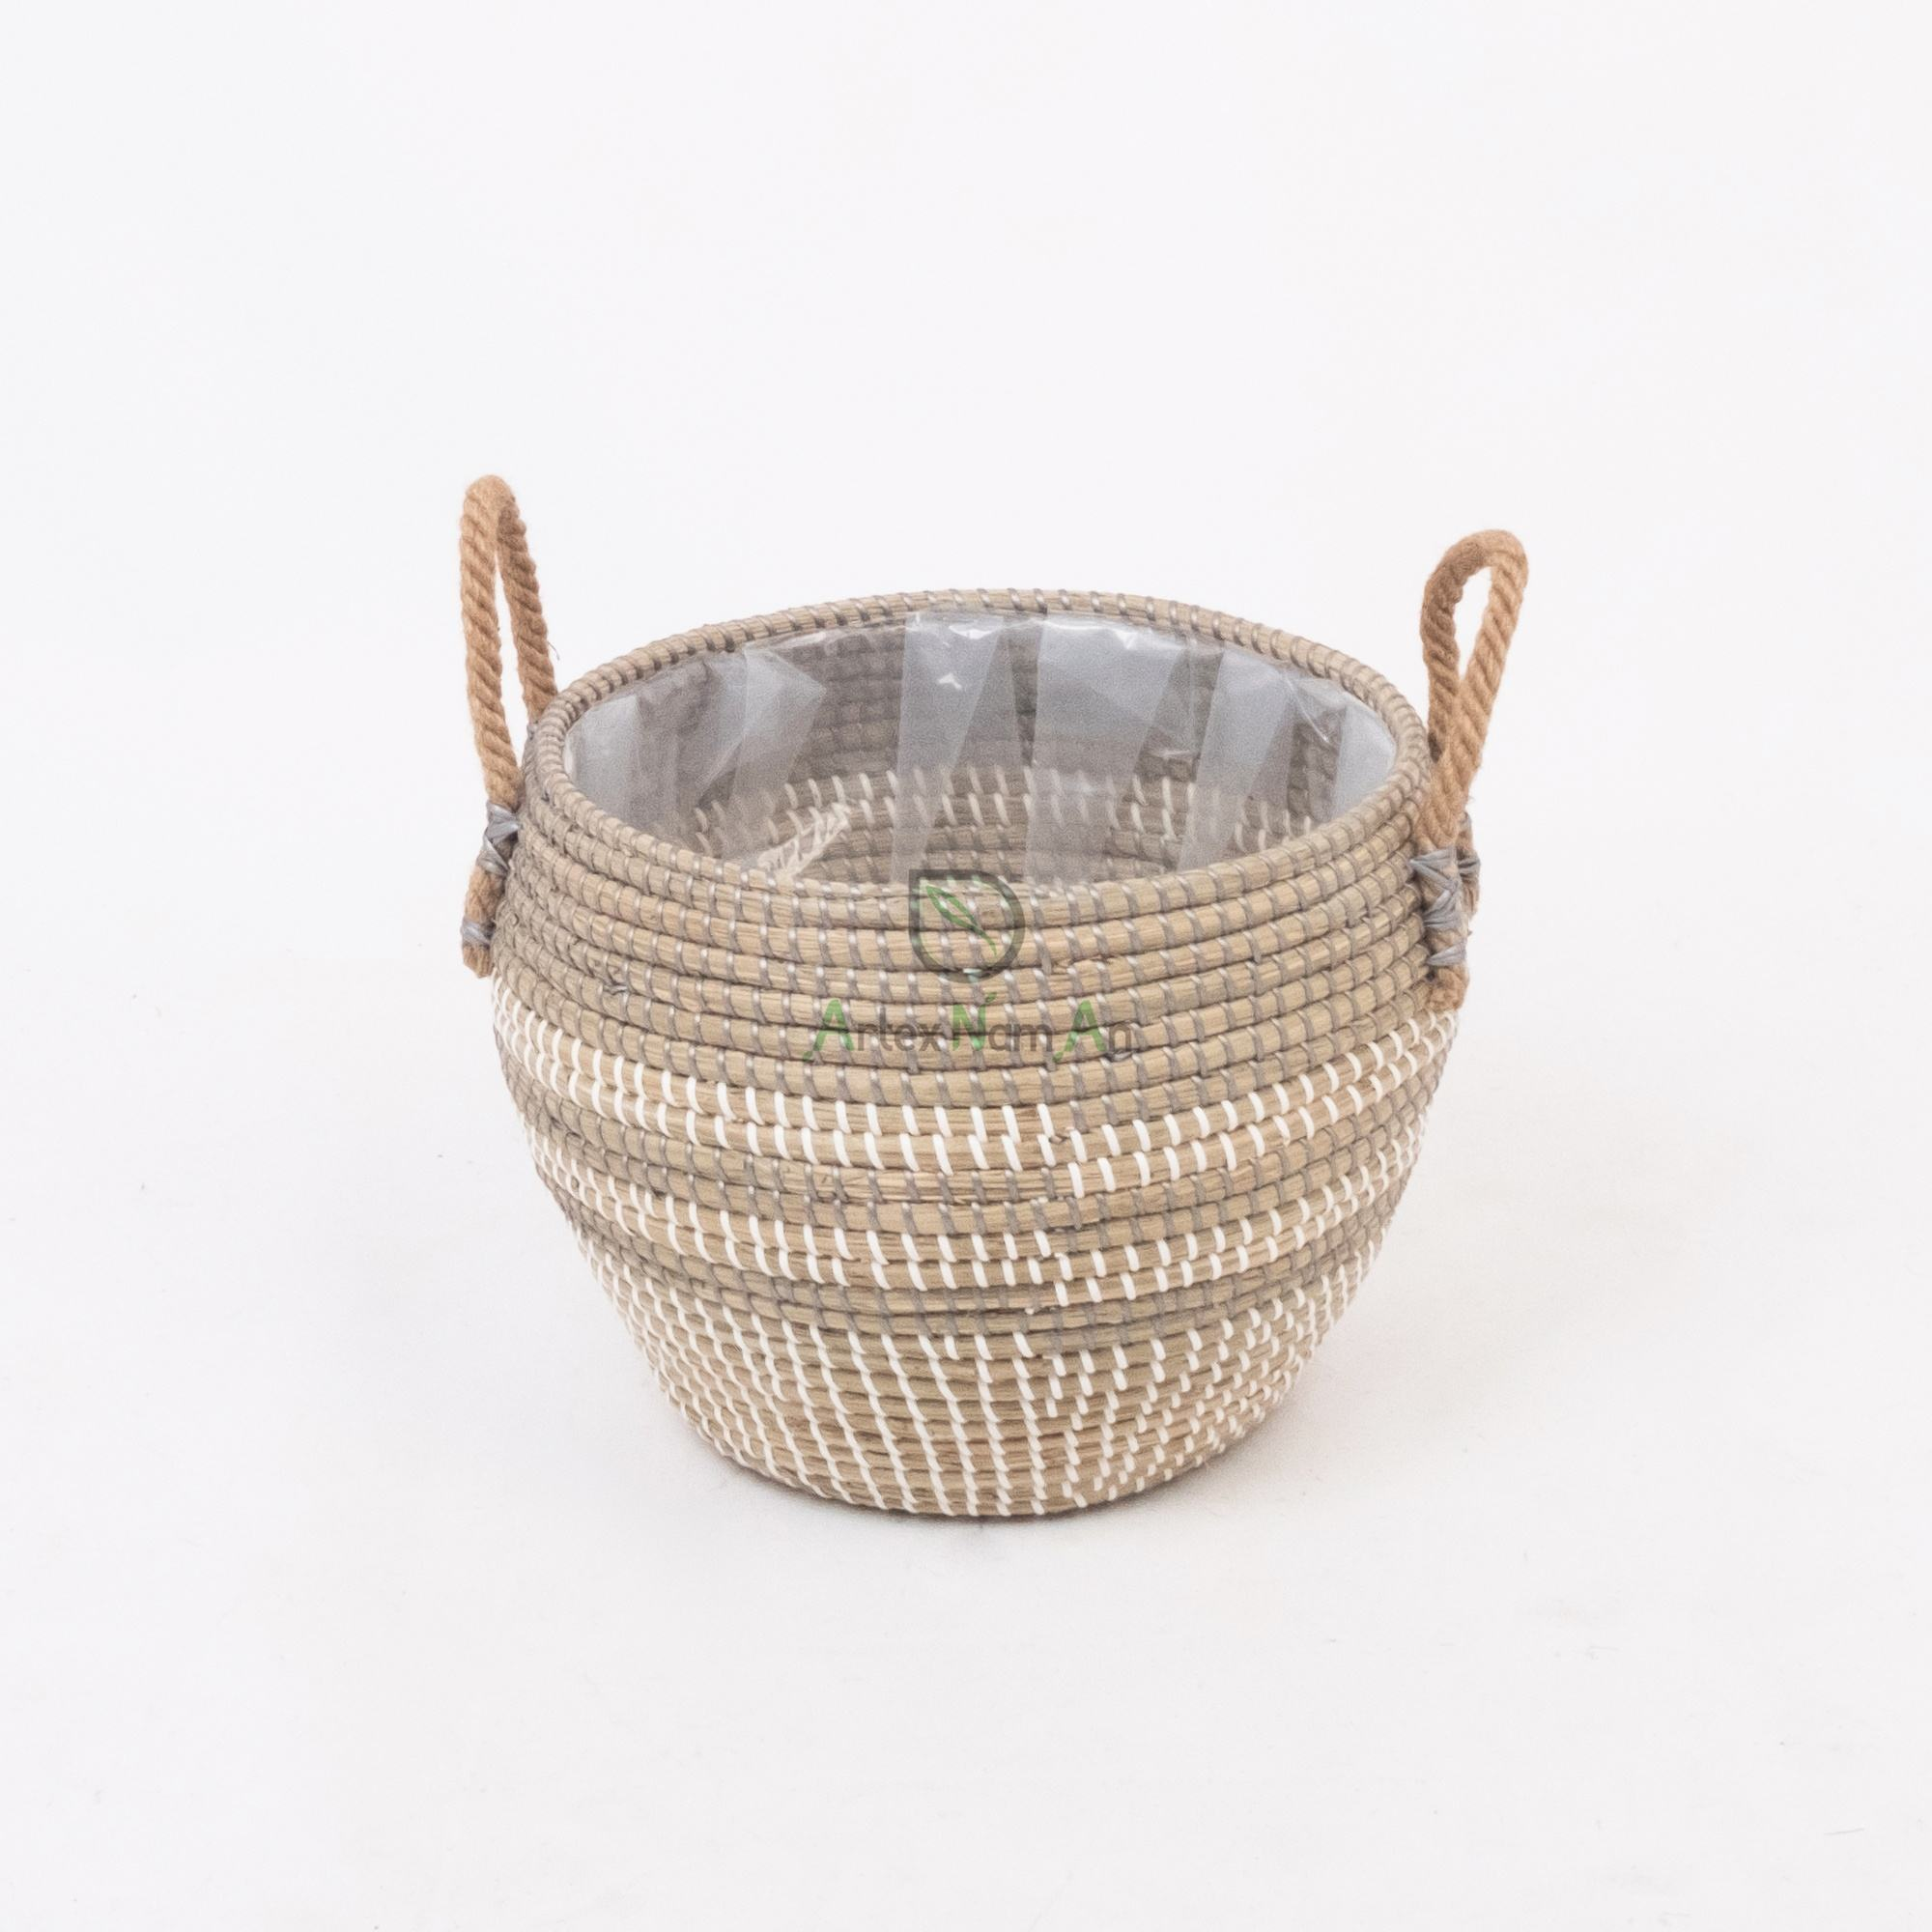 Vietnam supplier seagrass planter garden flower pot indoor plant pot also woven basket for plants with handles